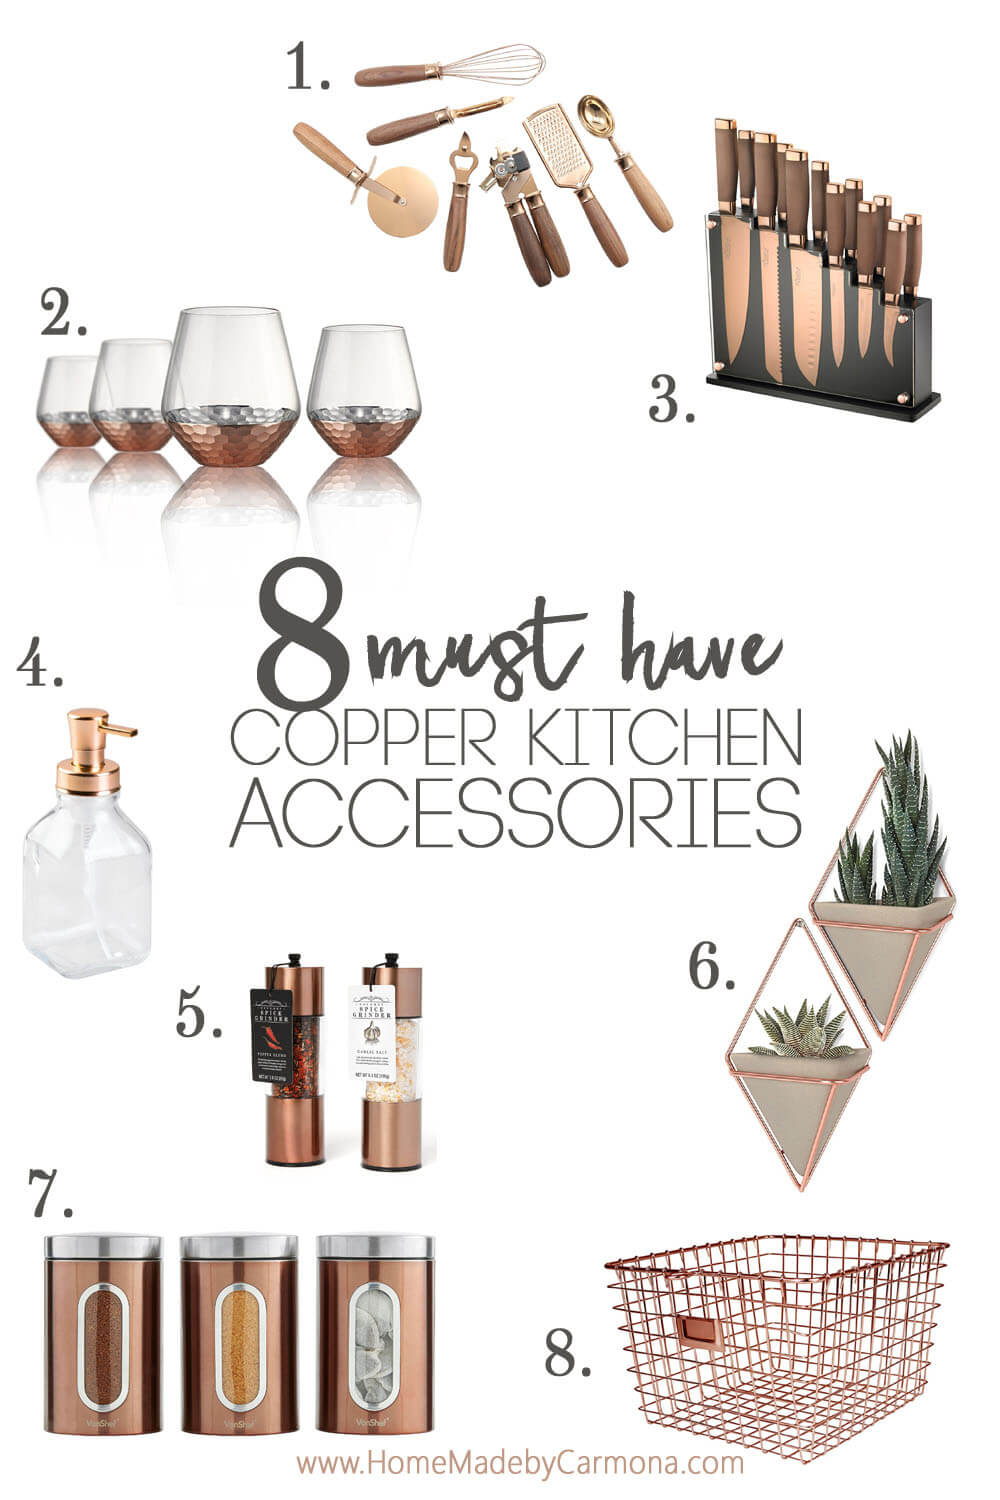 8 Must Have Copper Kitchen Accessories